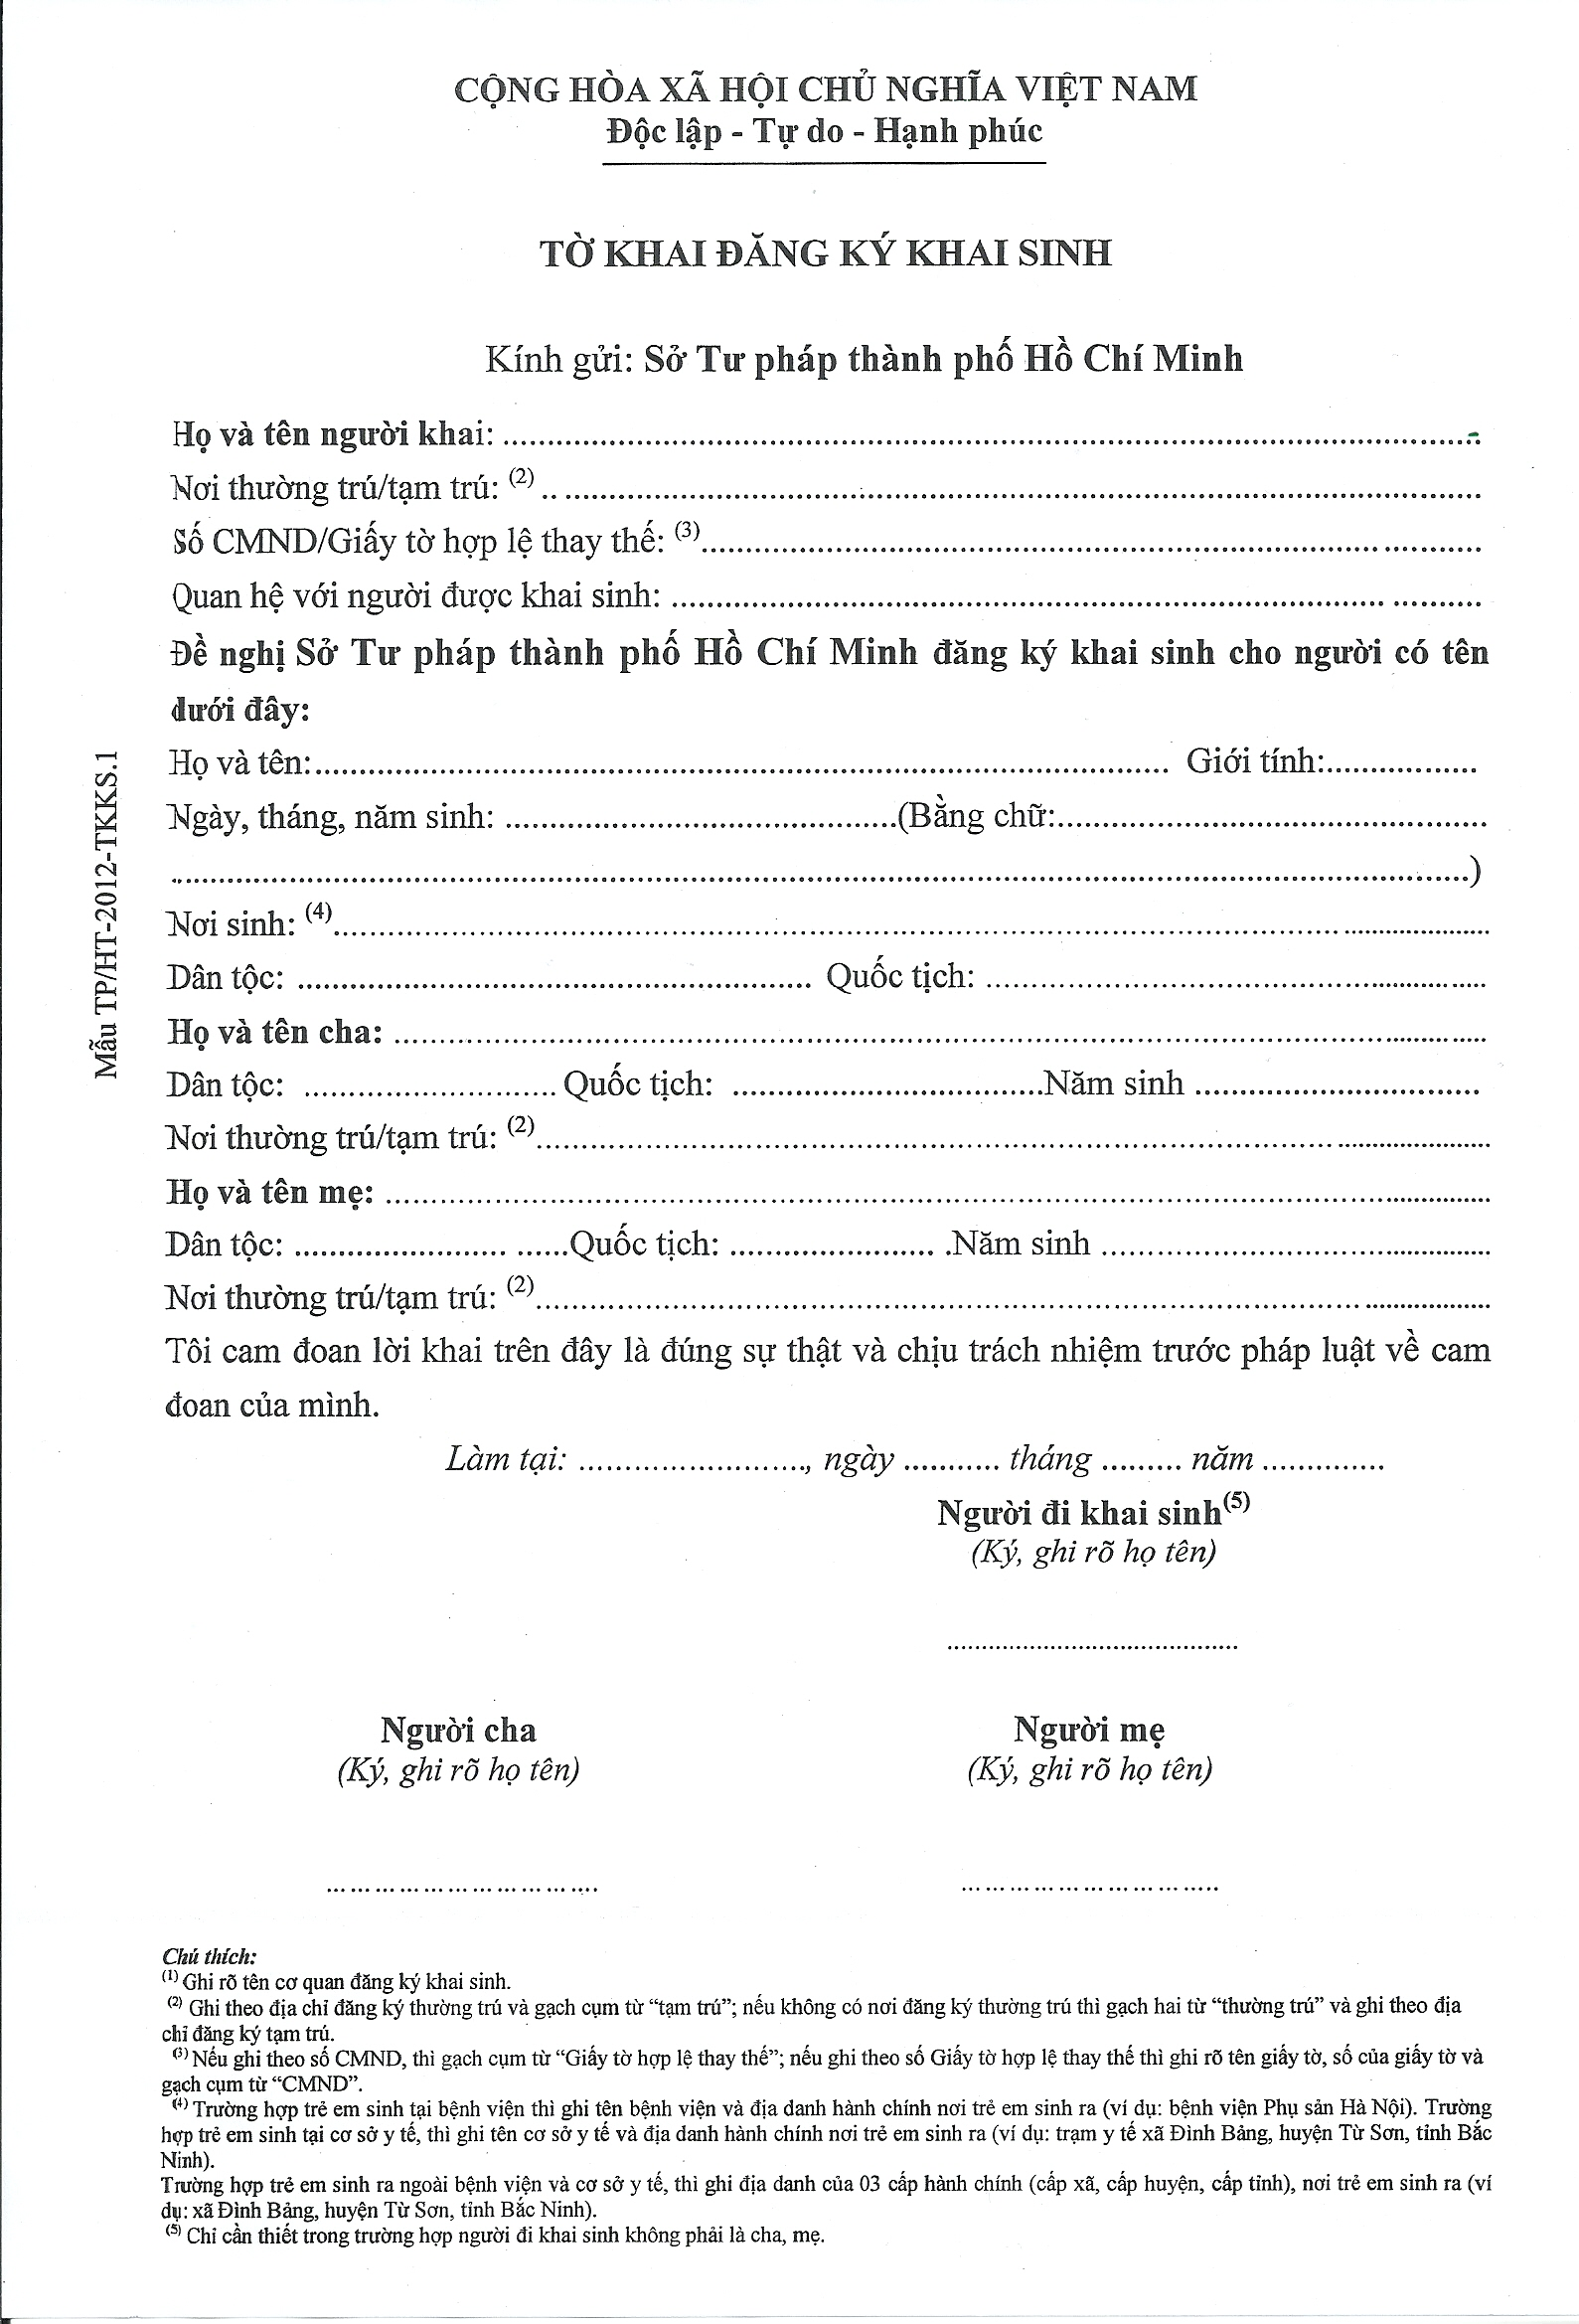 How To Get A Birth Certificate In Vietnam A Summary Hello Saigon